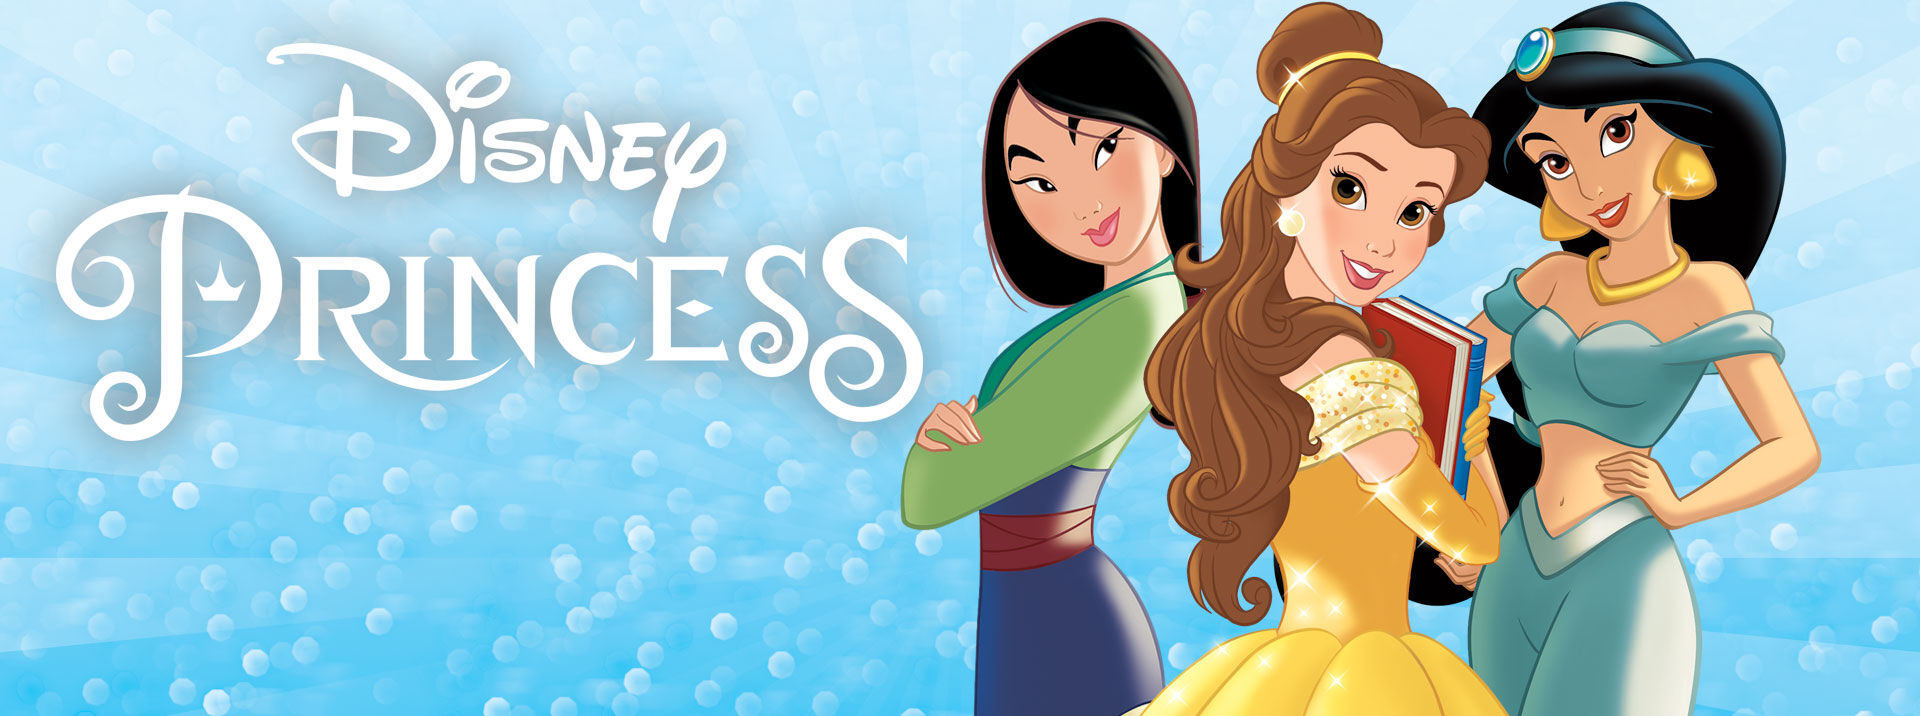 Disney princess altavistaventures Image collections